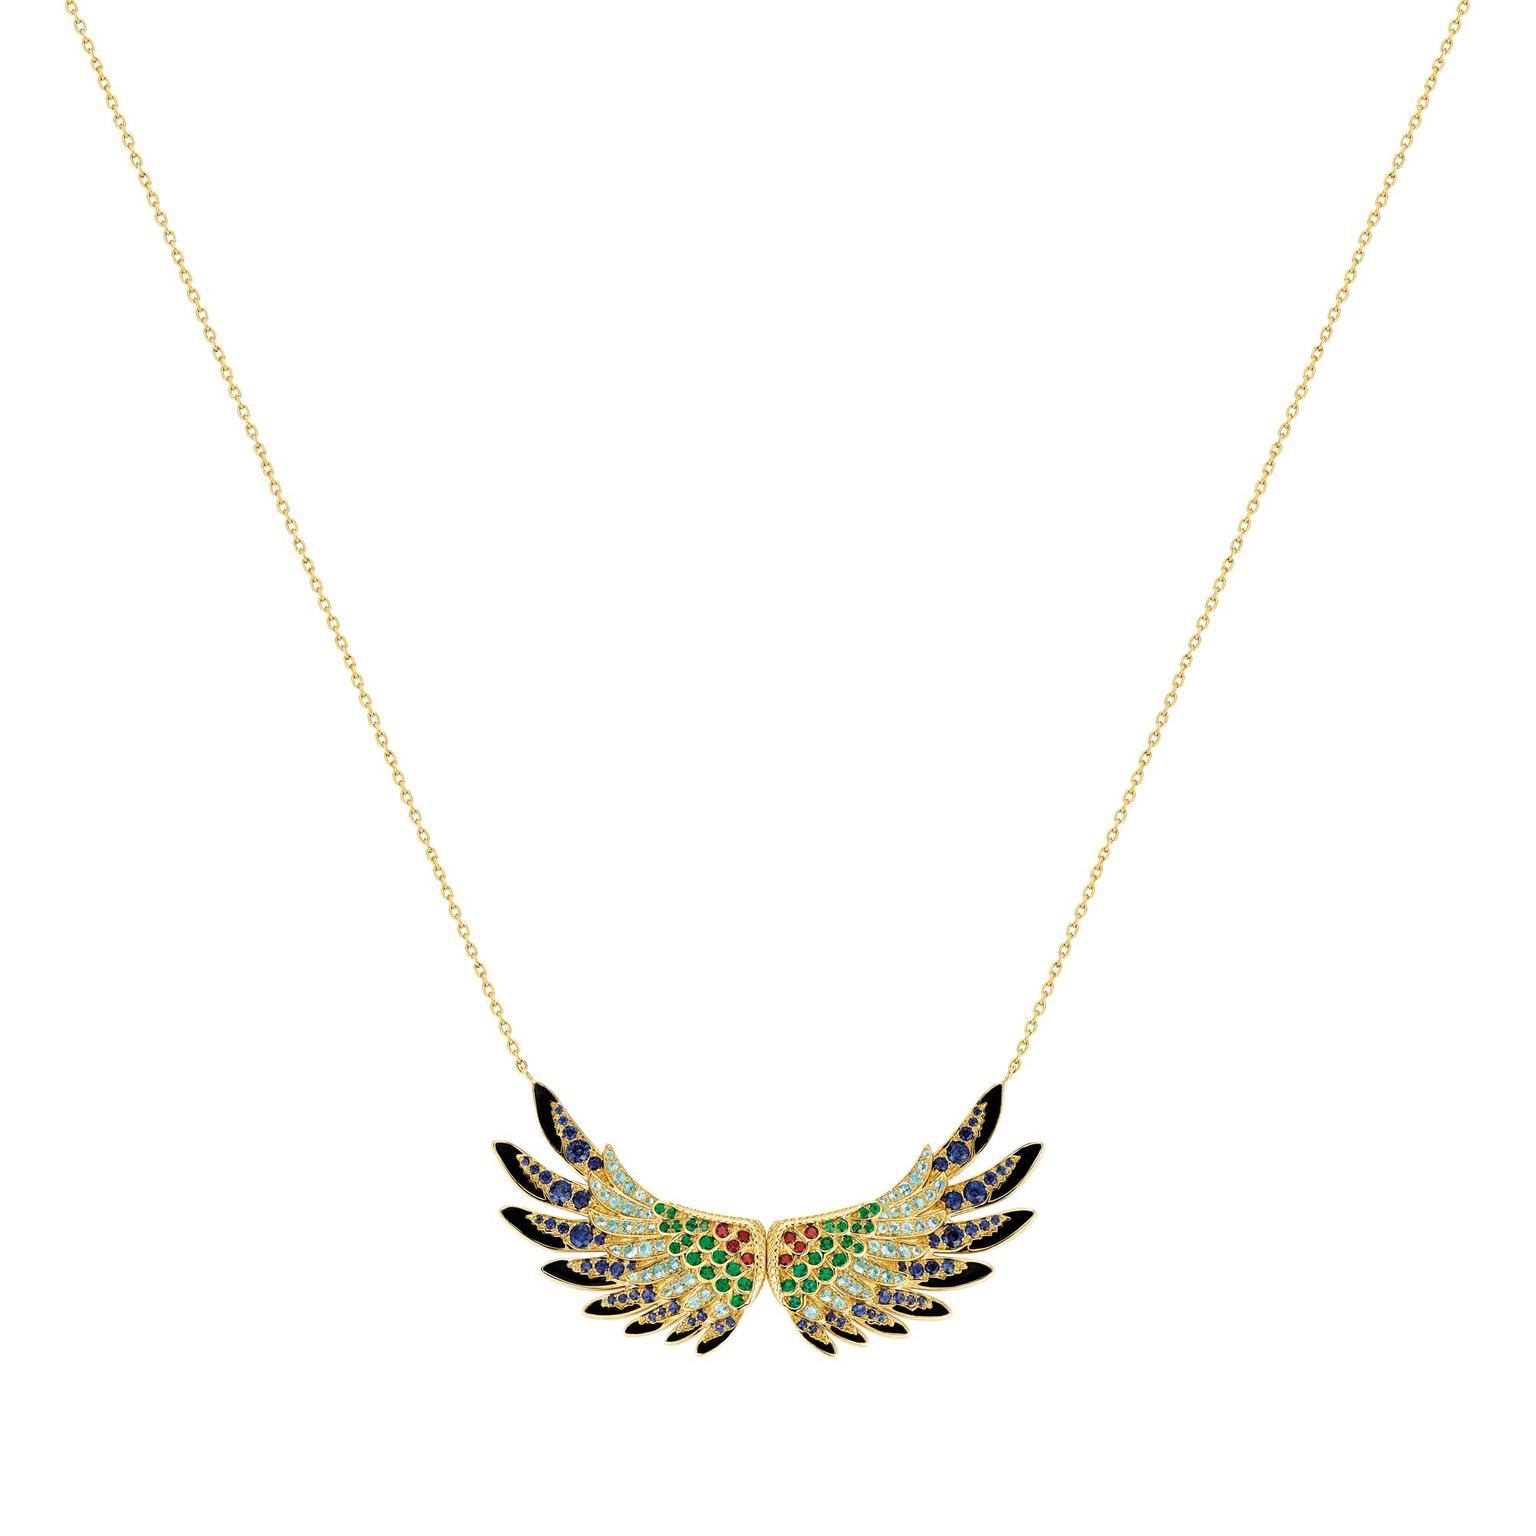 Lalique Perroquet parrot wing pendant necklace